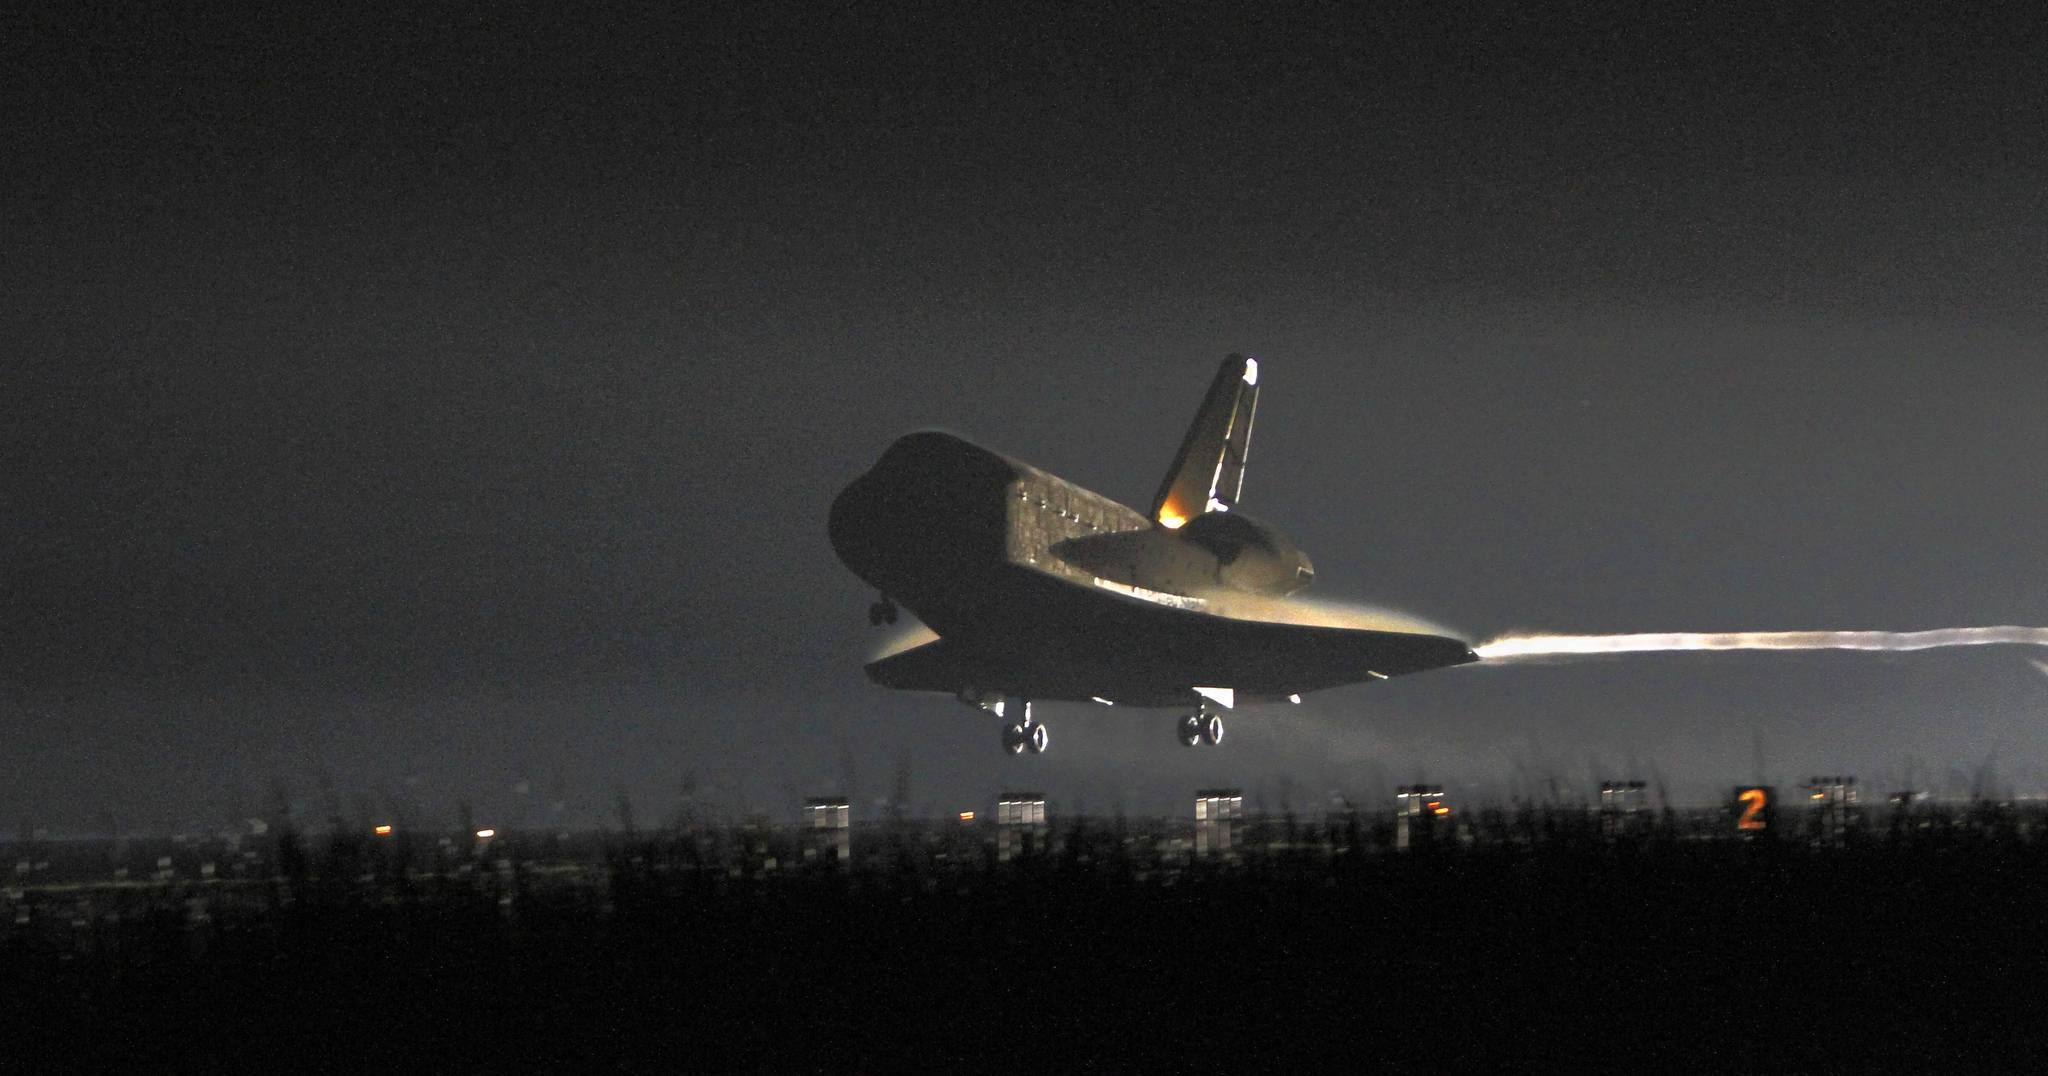 Space shuttle Endeavour's last trip to space ended with a landing at Kennedy Space Center on June 1, 2011.